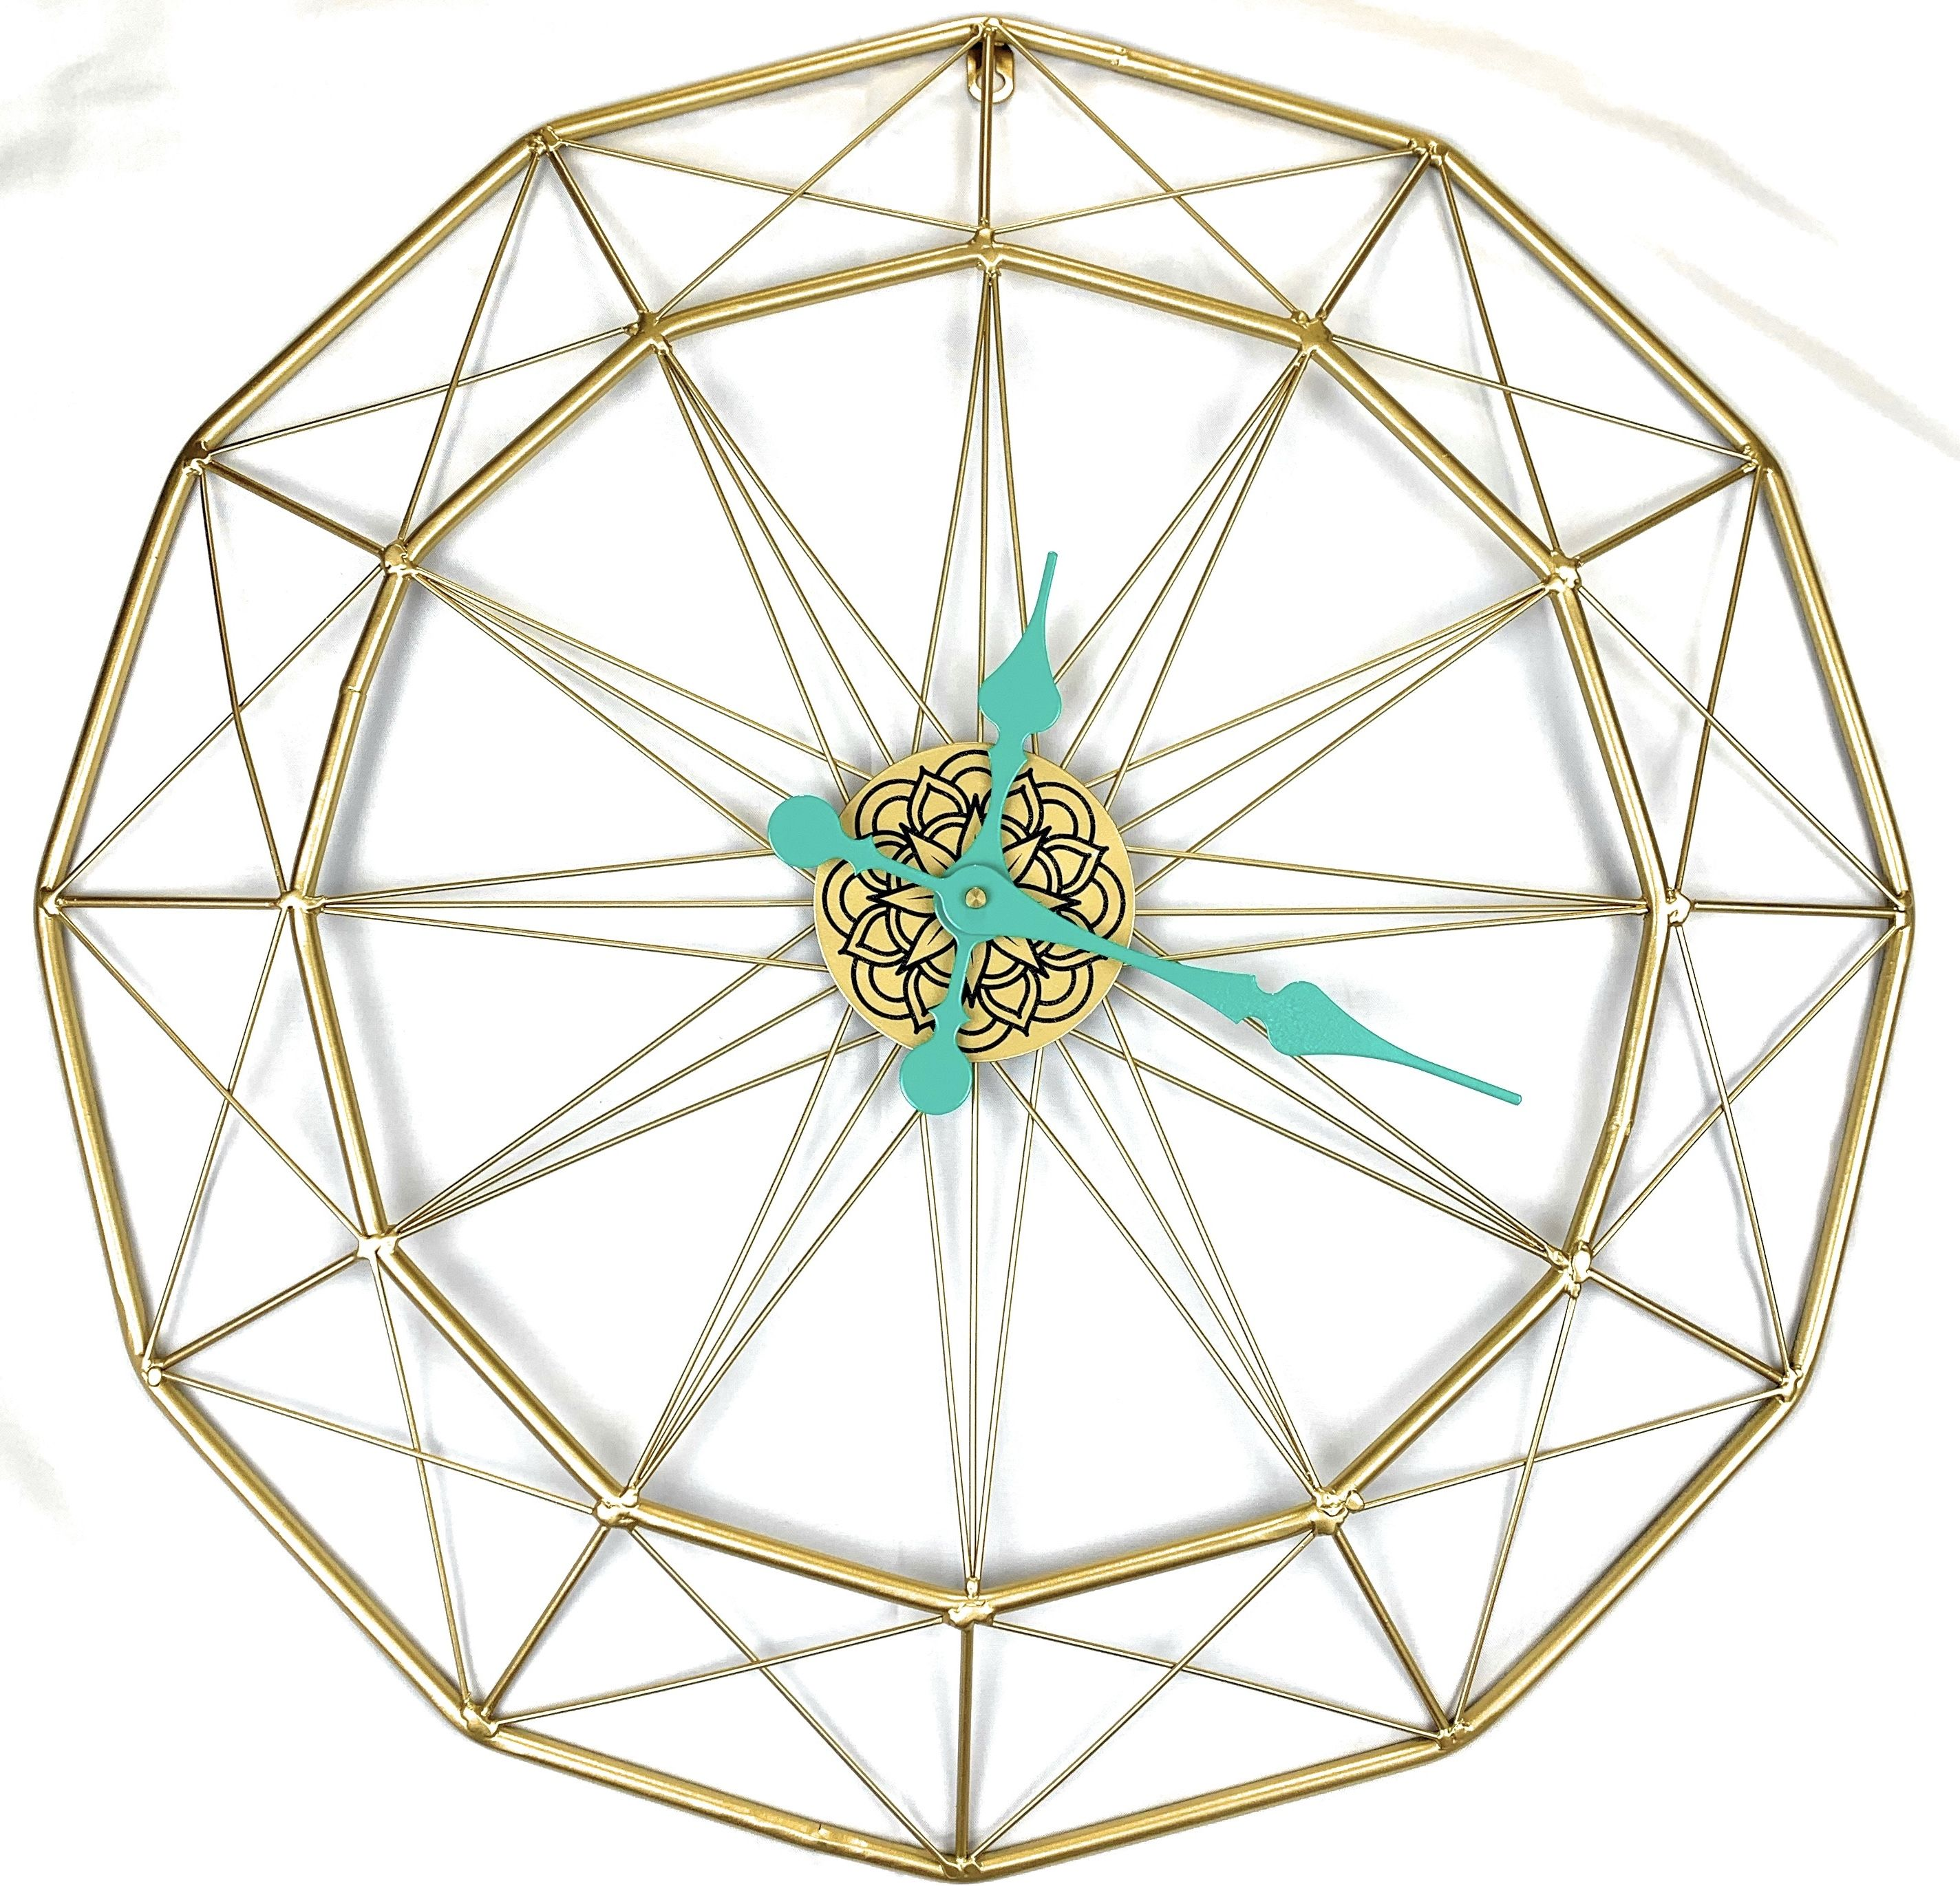 A Large 22 Inch Gold Wire Wall Clock With A Floral